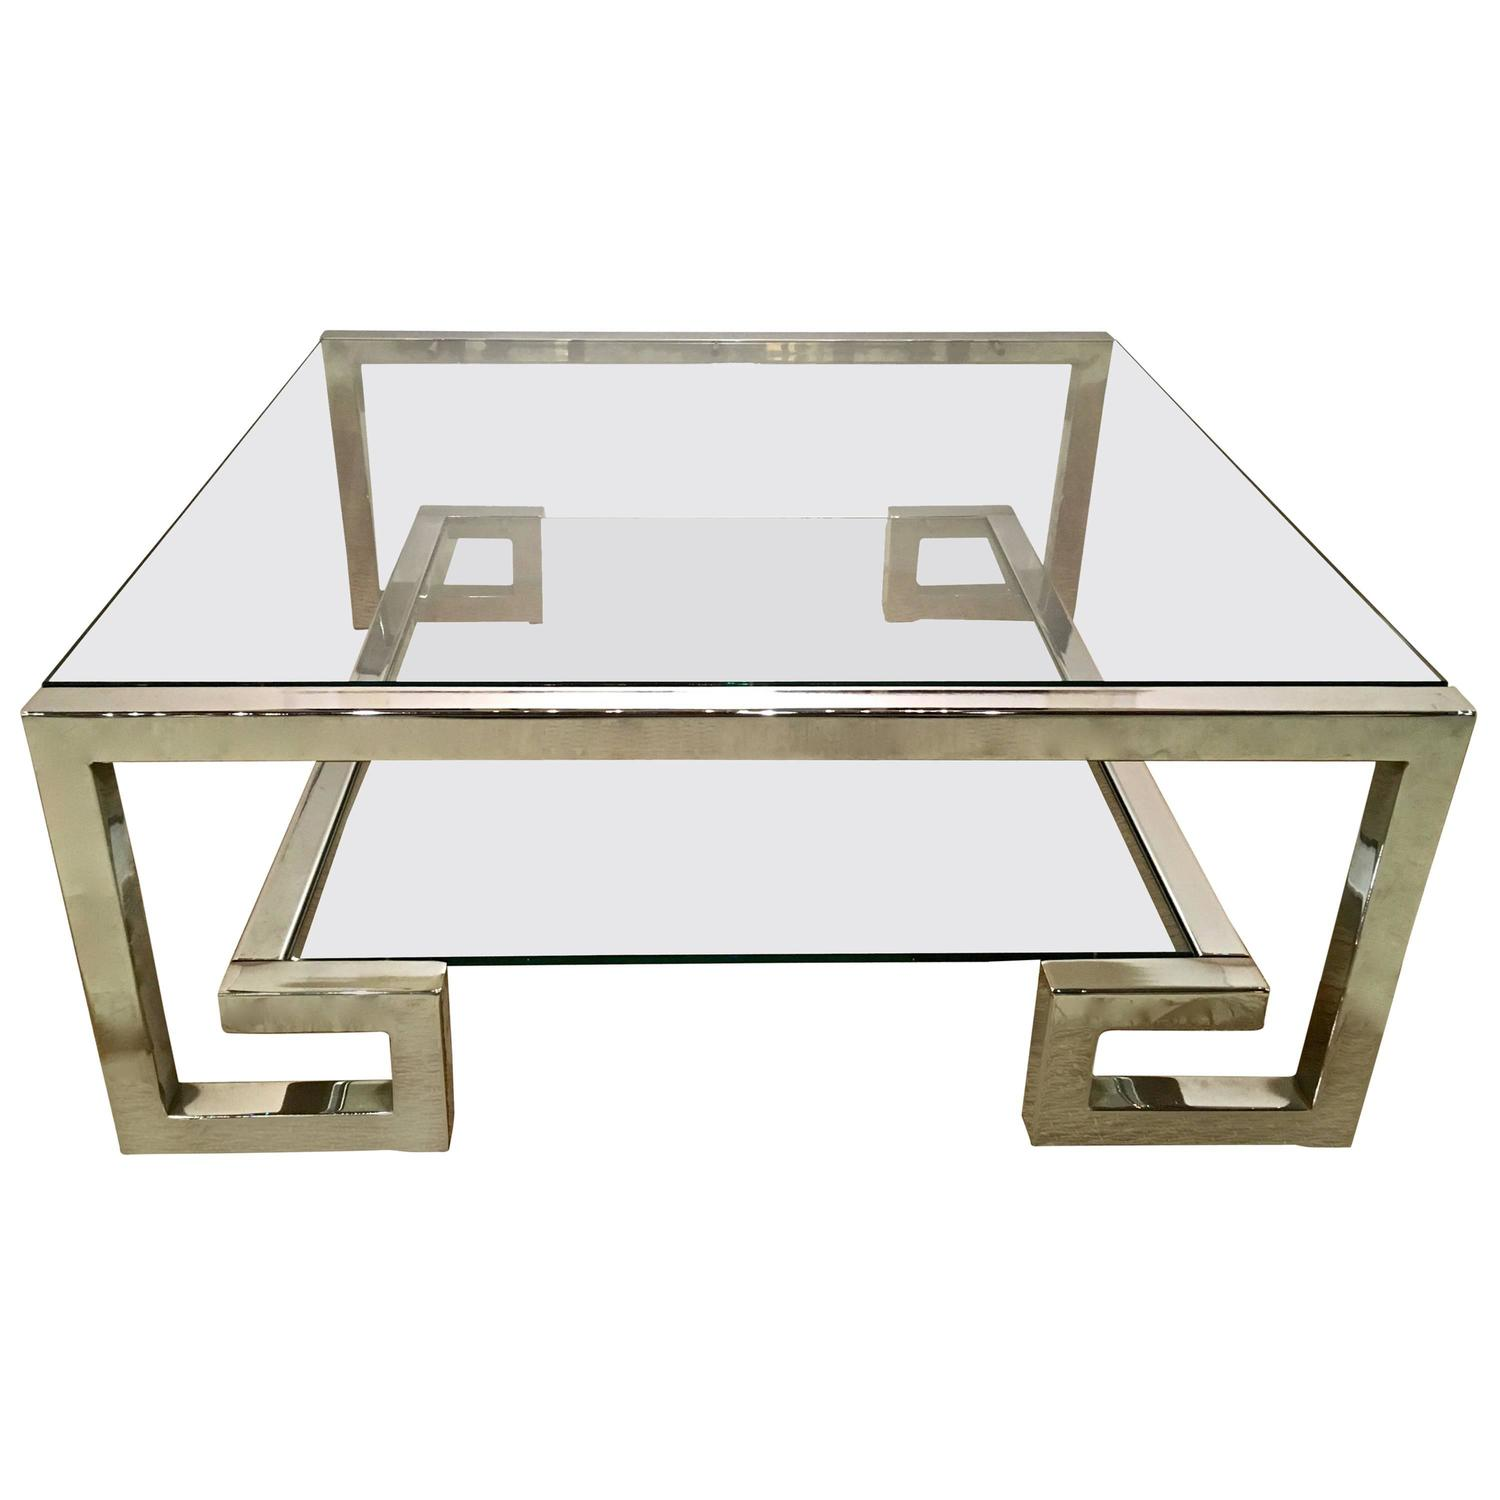 Chrome and Glass Greek Key Coffee Table Manner of Milo Baughman